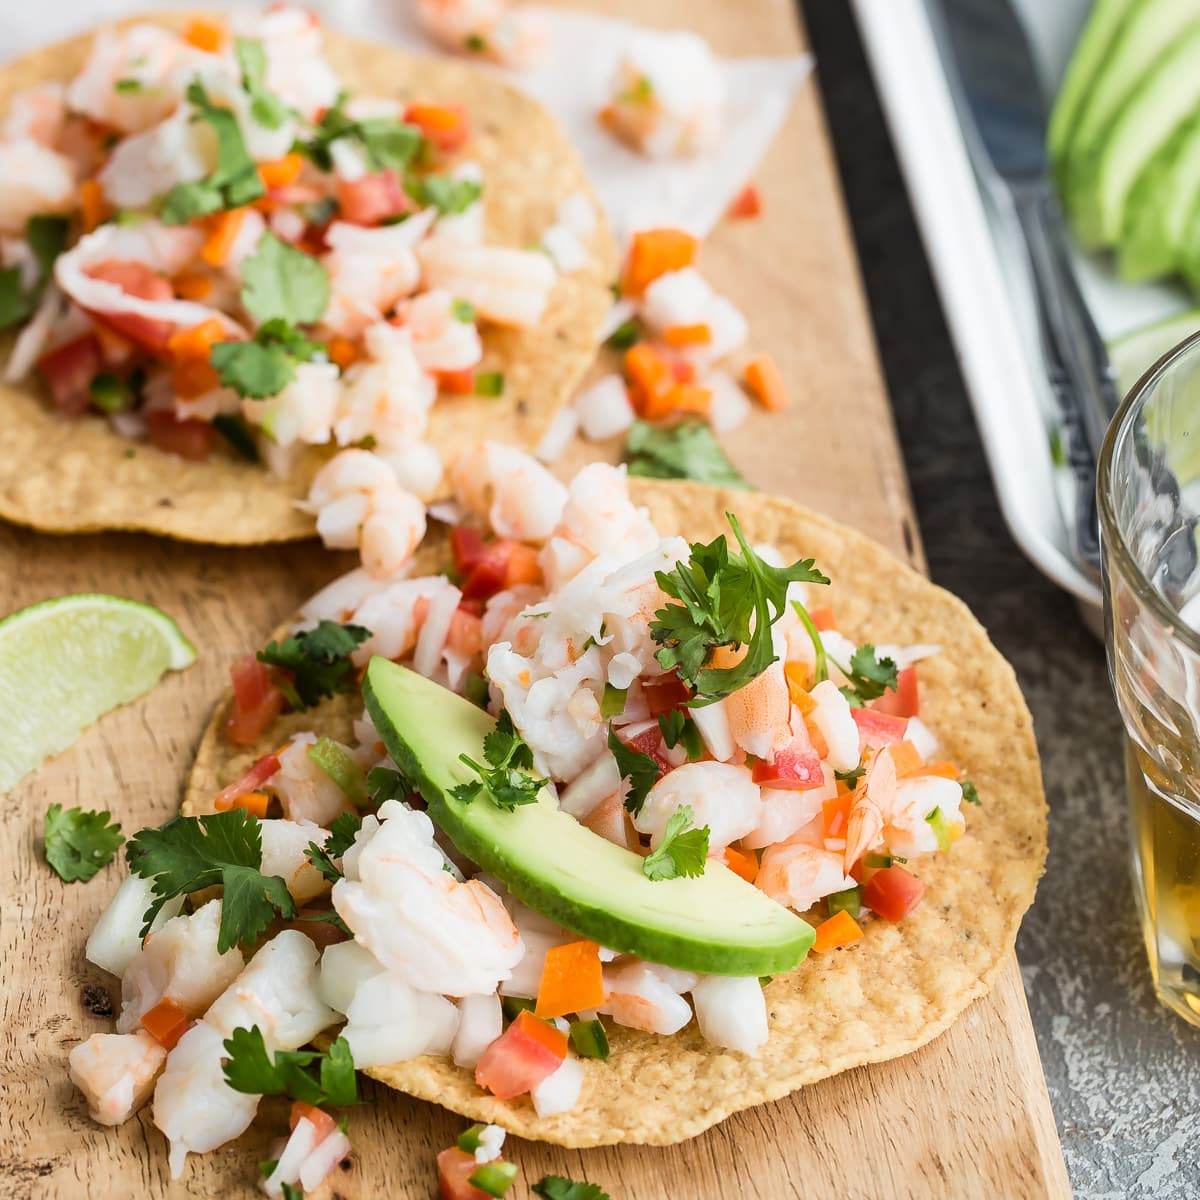 Nothing says party quite like a big, icy bowl of Ceviche de Camaron, otherwise known as Shrimp Ceviche. It's popular for a good reason: it's so dang delicious. It makes a perfect summer appetizer or potluck offering served on tostadas, crackers, and chips. I learned this recipe in Mexico.